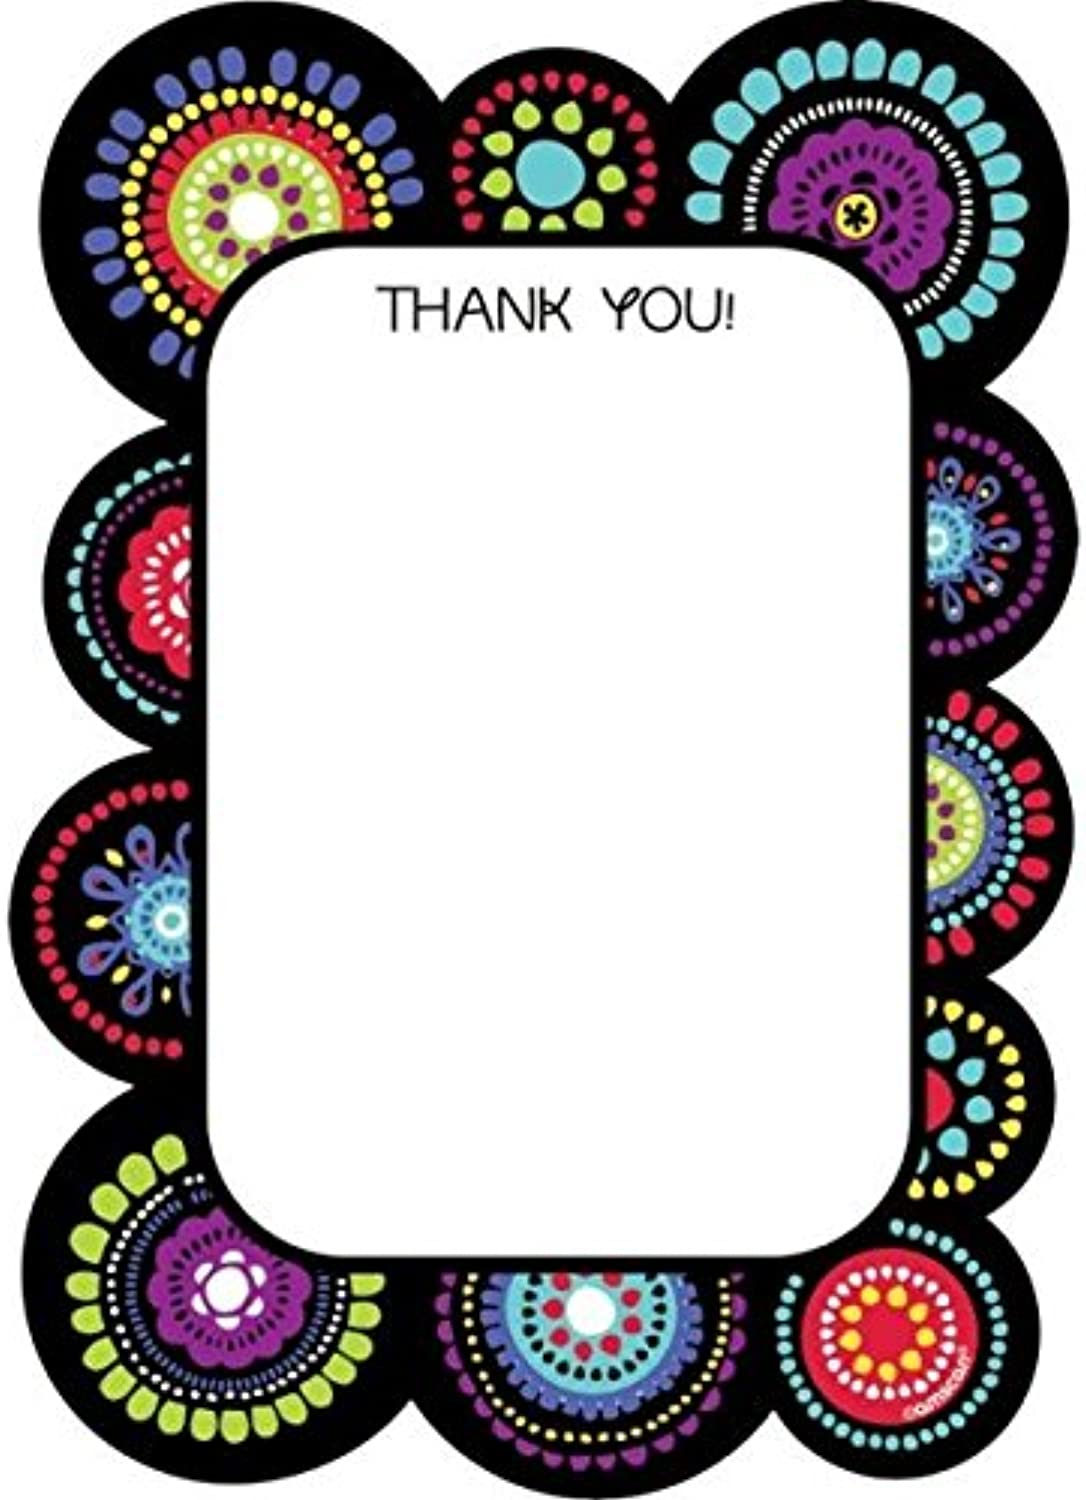 Amscan Trendy Graphic Fun Thank You Notes Set (40 Piece), Multicolor, 5 1 2  x 4